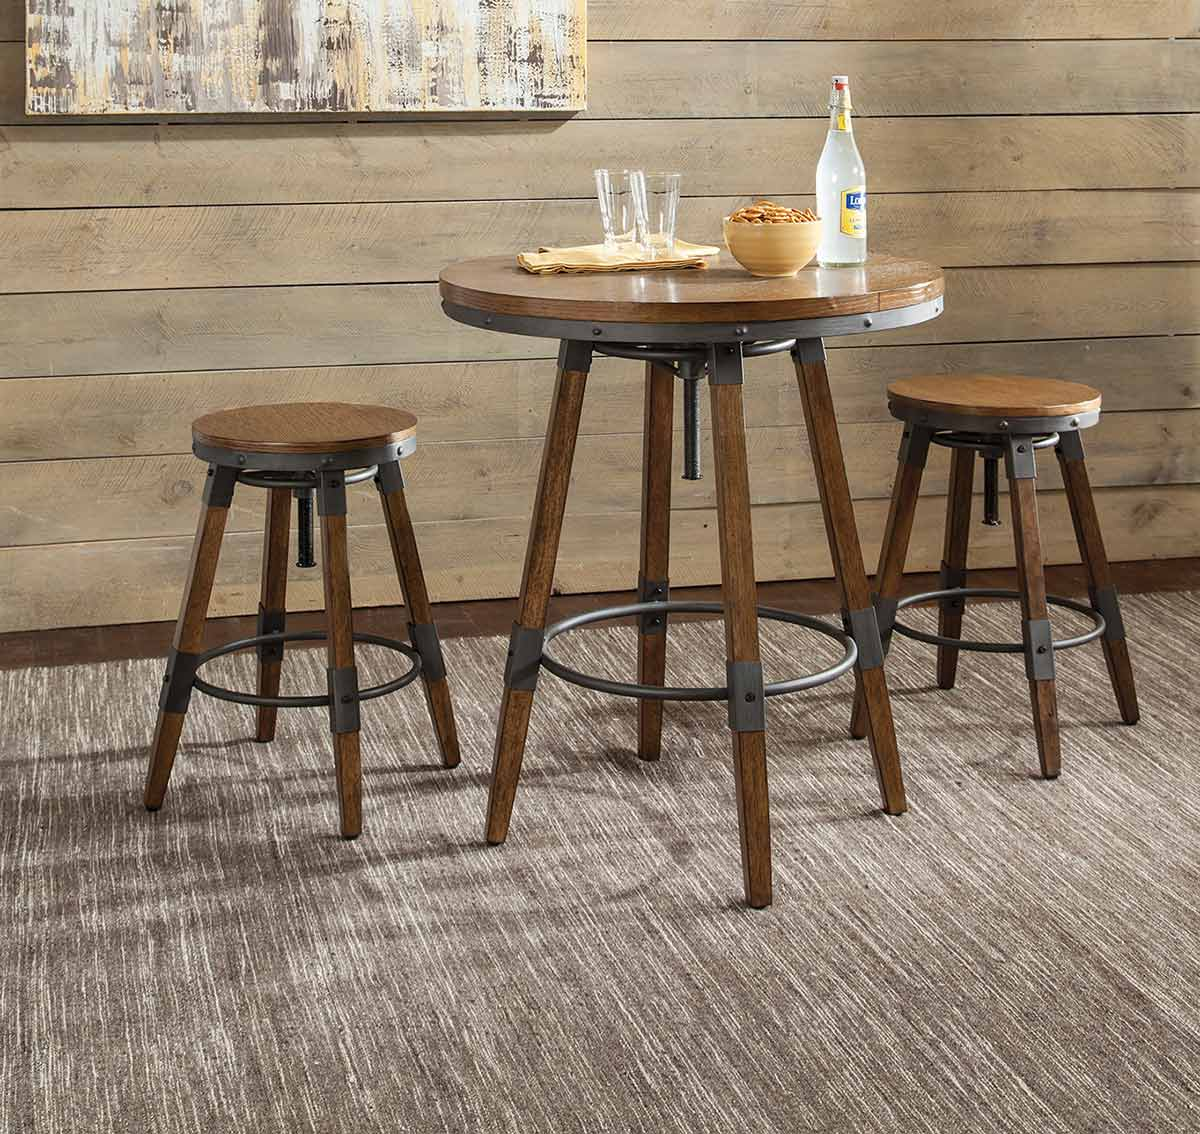 Coaster Hornell Counter/Bar Dining Set - Weathered Oak/Gunmetal